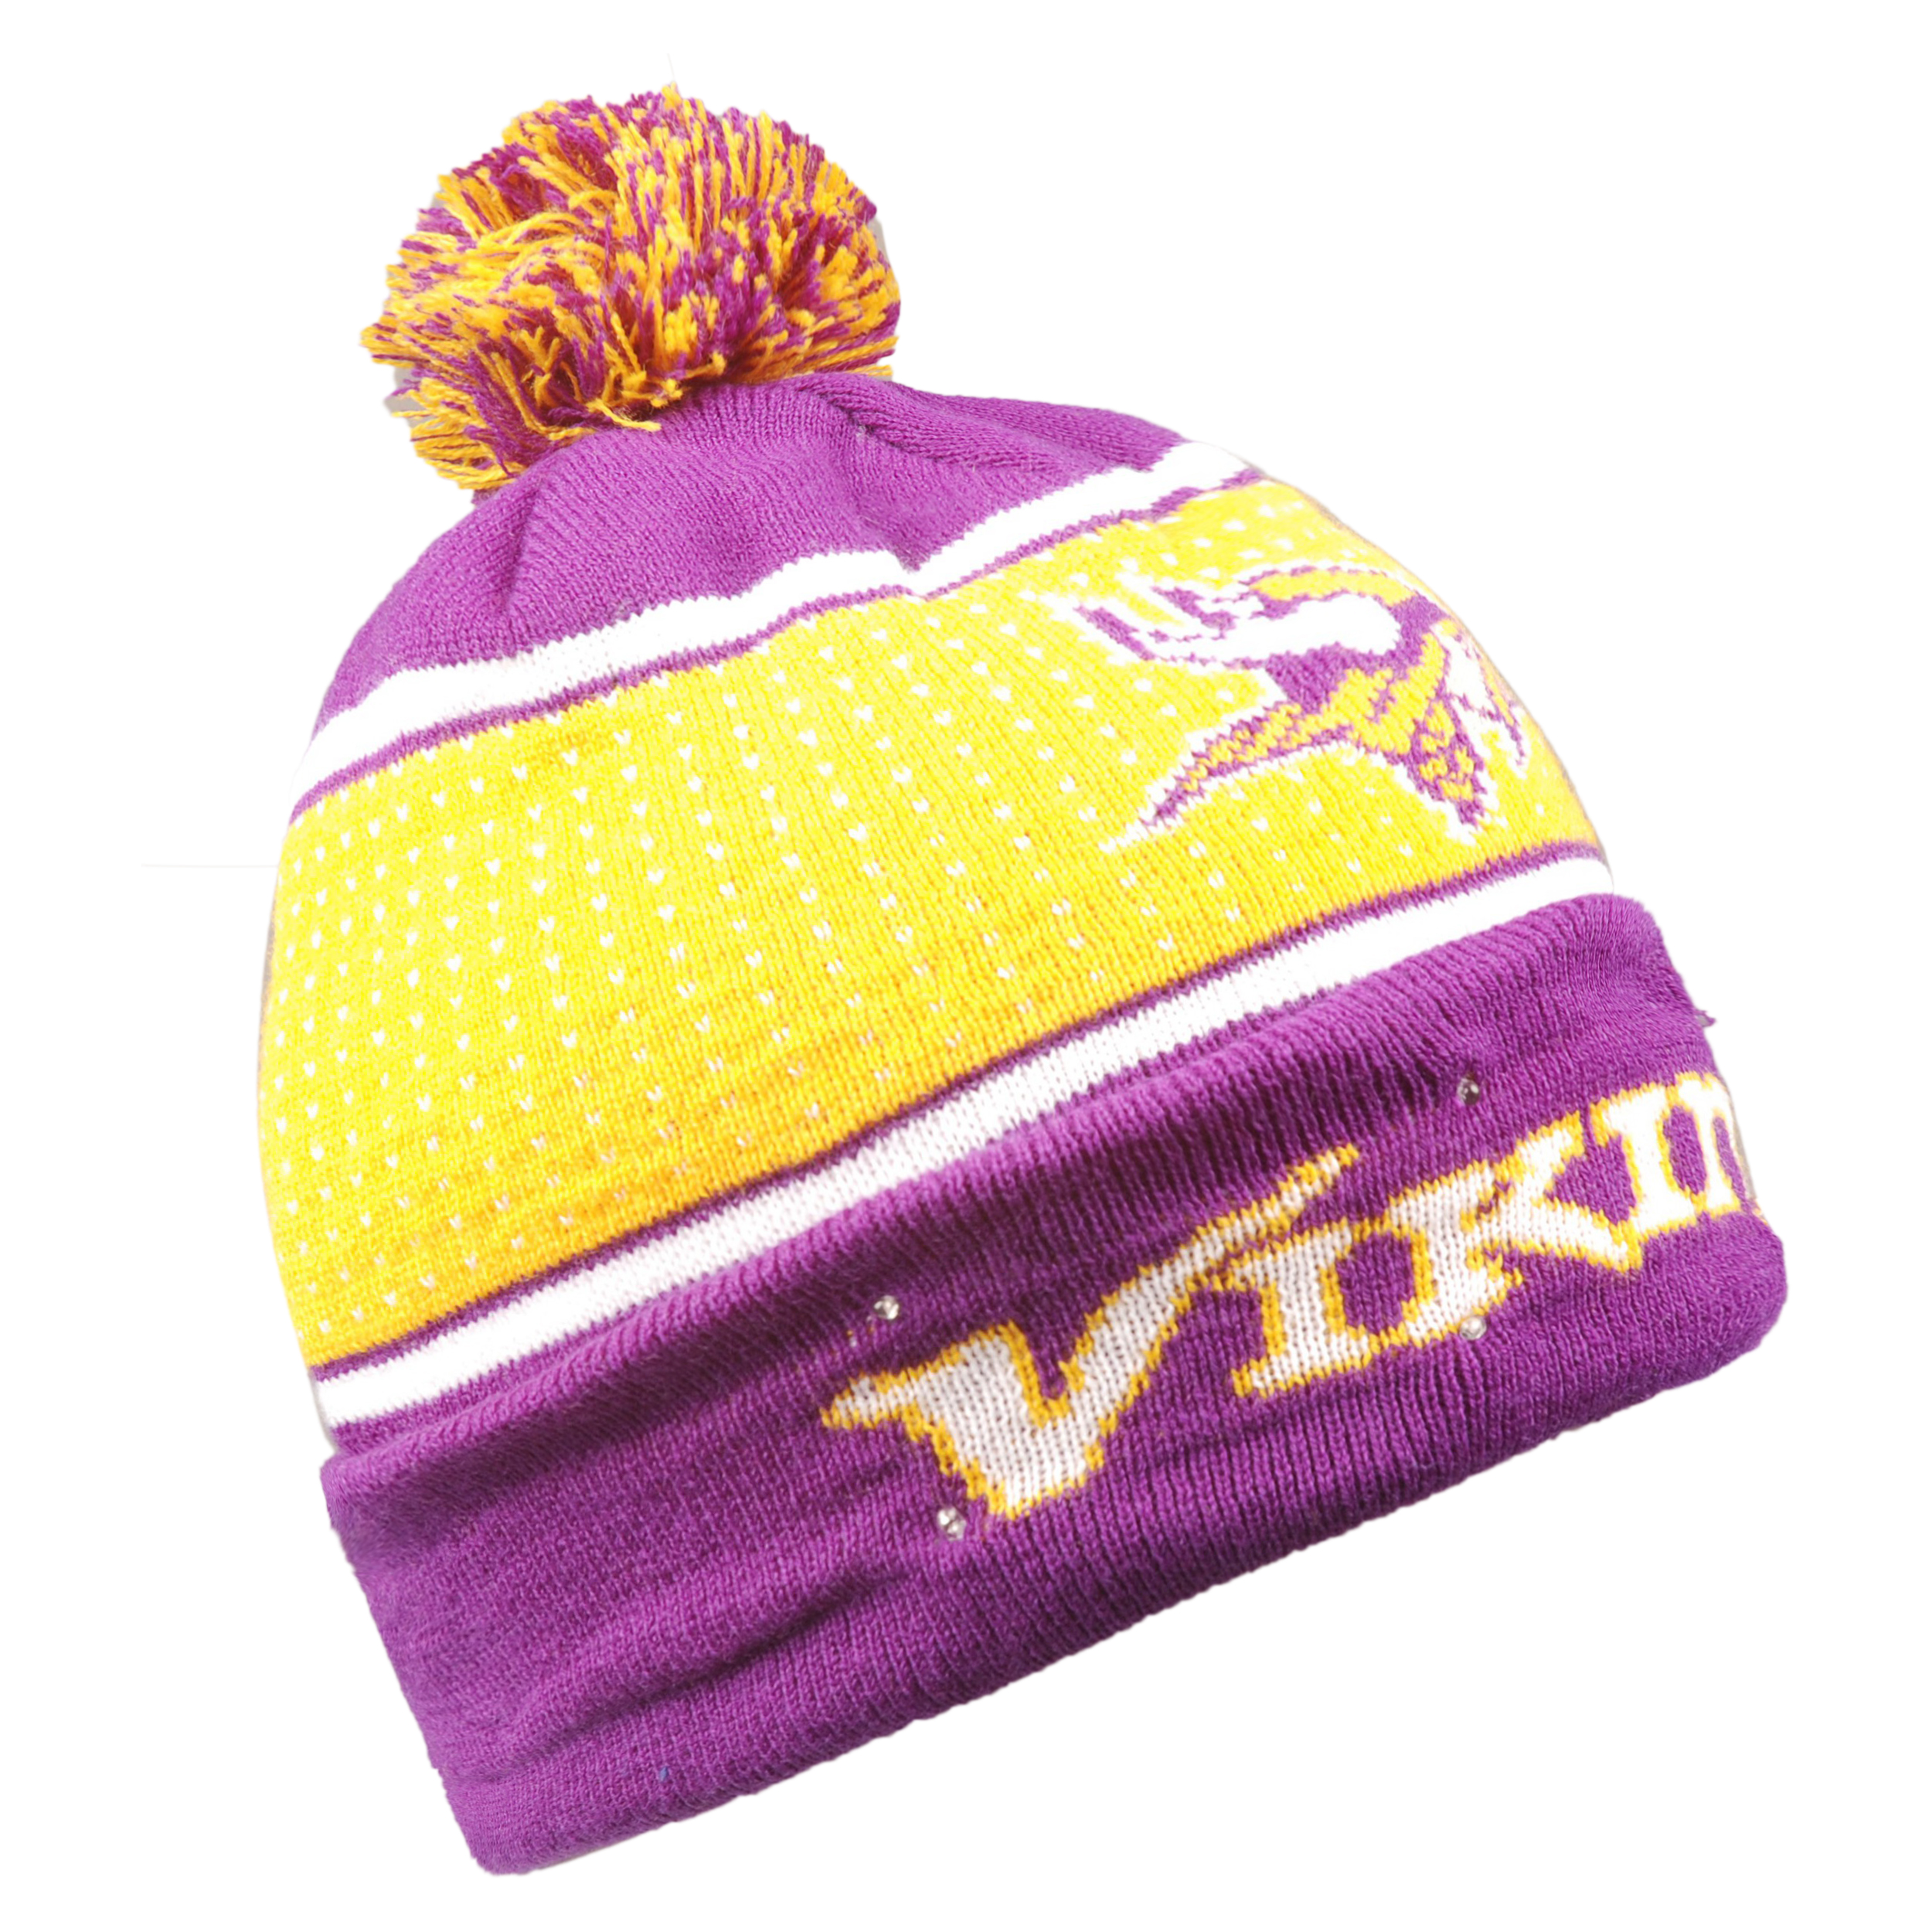 Minnesota Vikings 2018 Big Logo Light Up Knit Hat 192797077218  03622f664